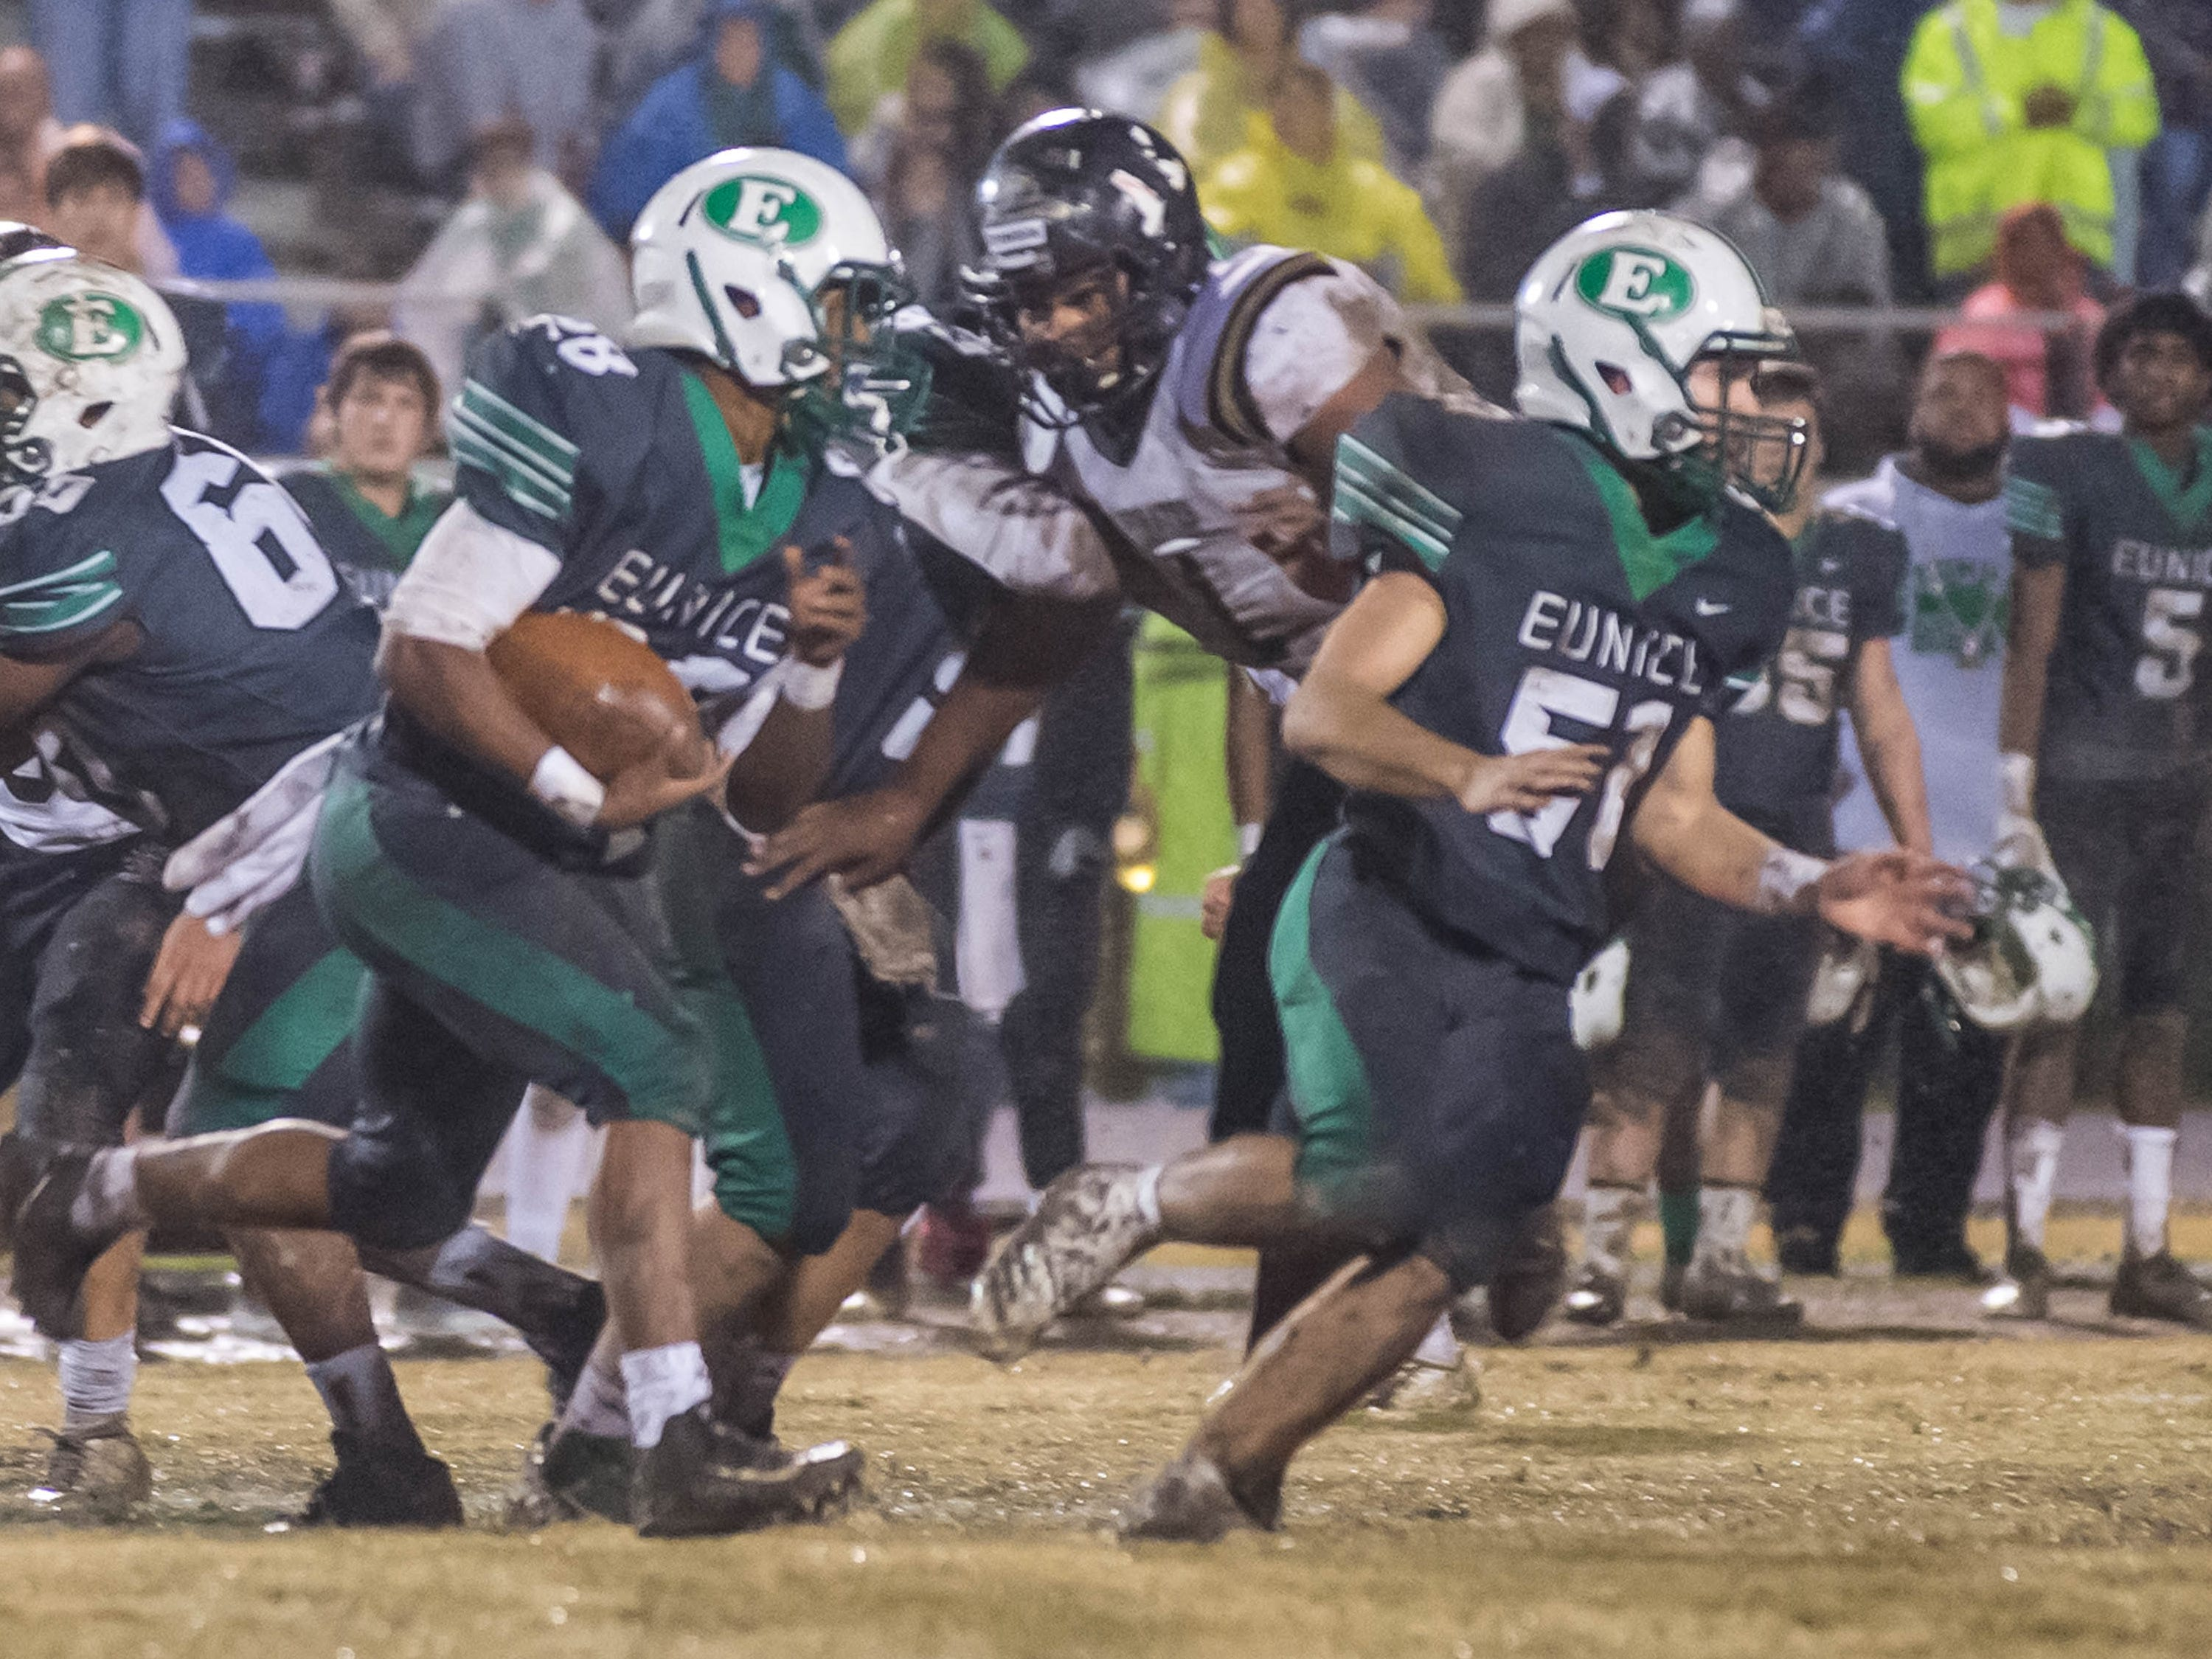 The Kaplan High Pirates travel to Eunice to take on the Bobcats in the LHSAA Class 3A semifinal game Friday Nov. 30, 2018.